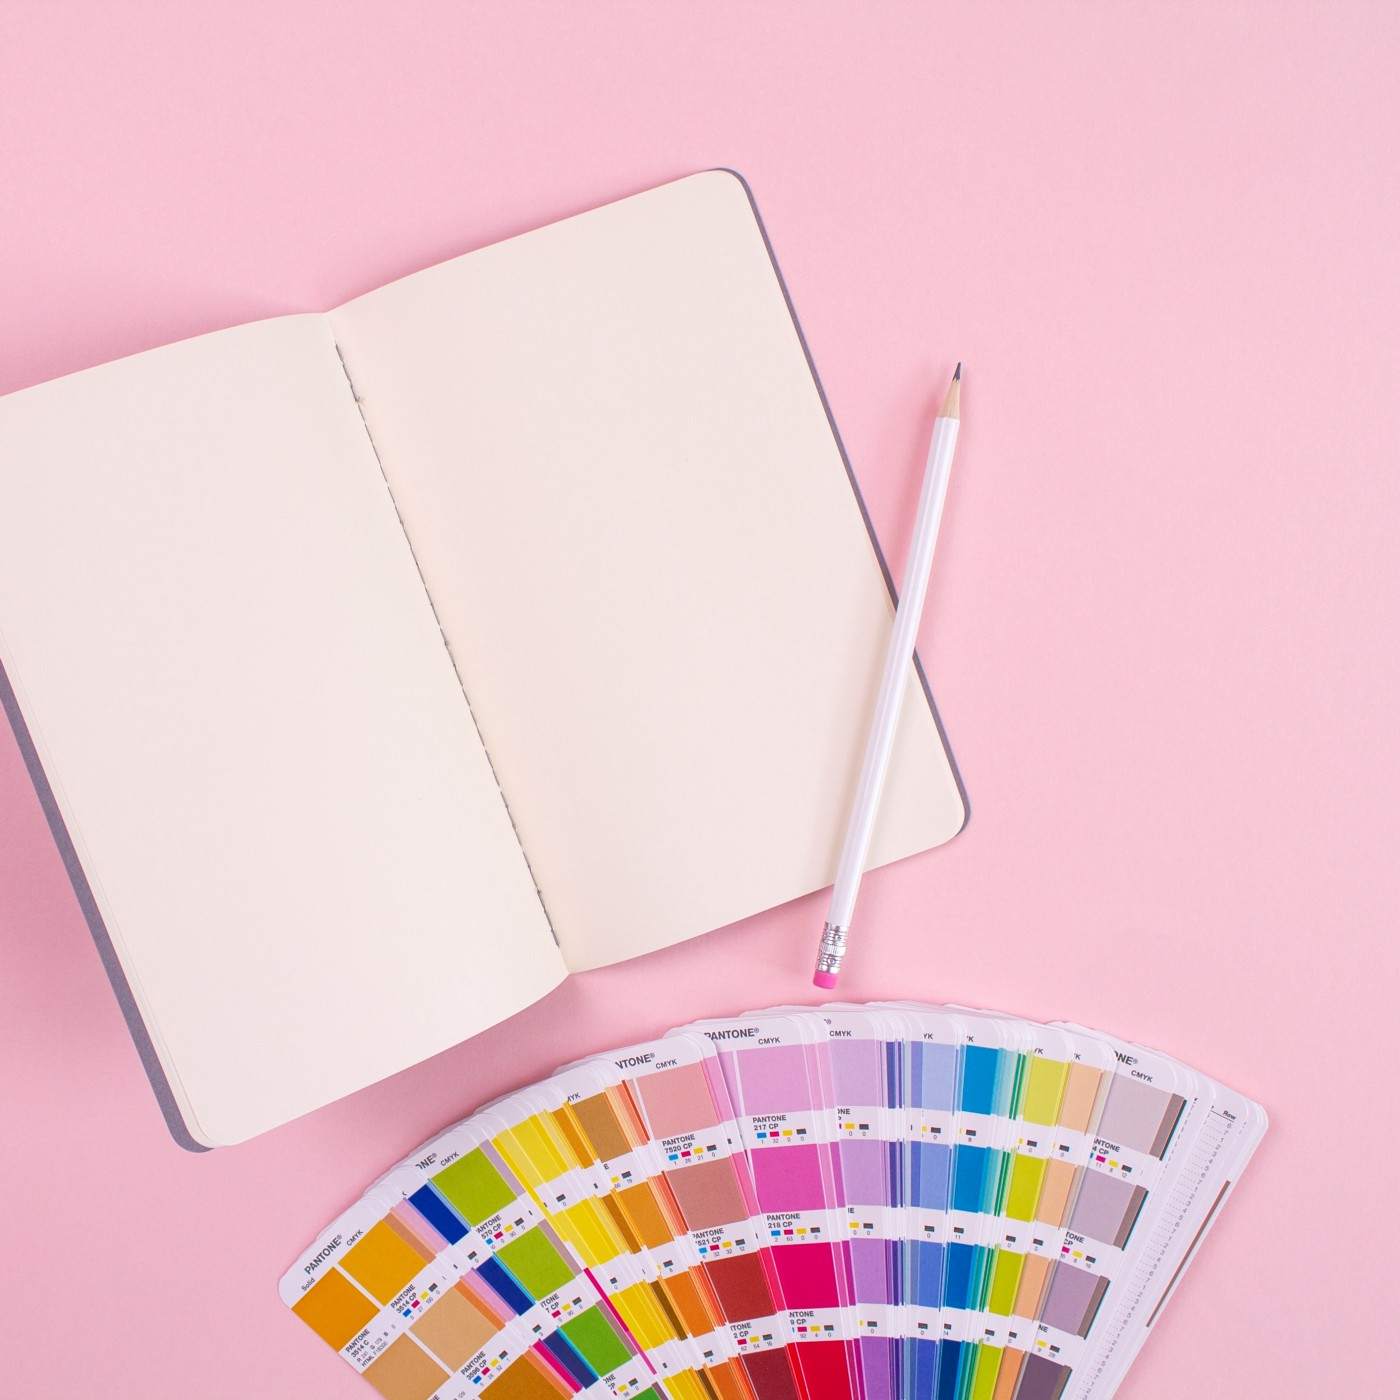 A journal, pencil, and color swatches